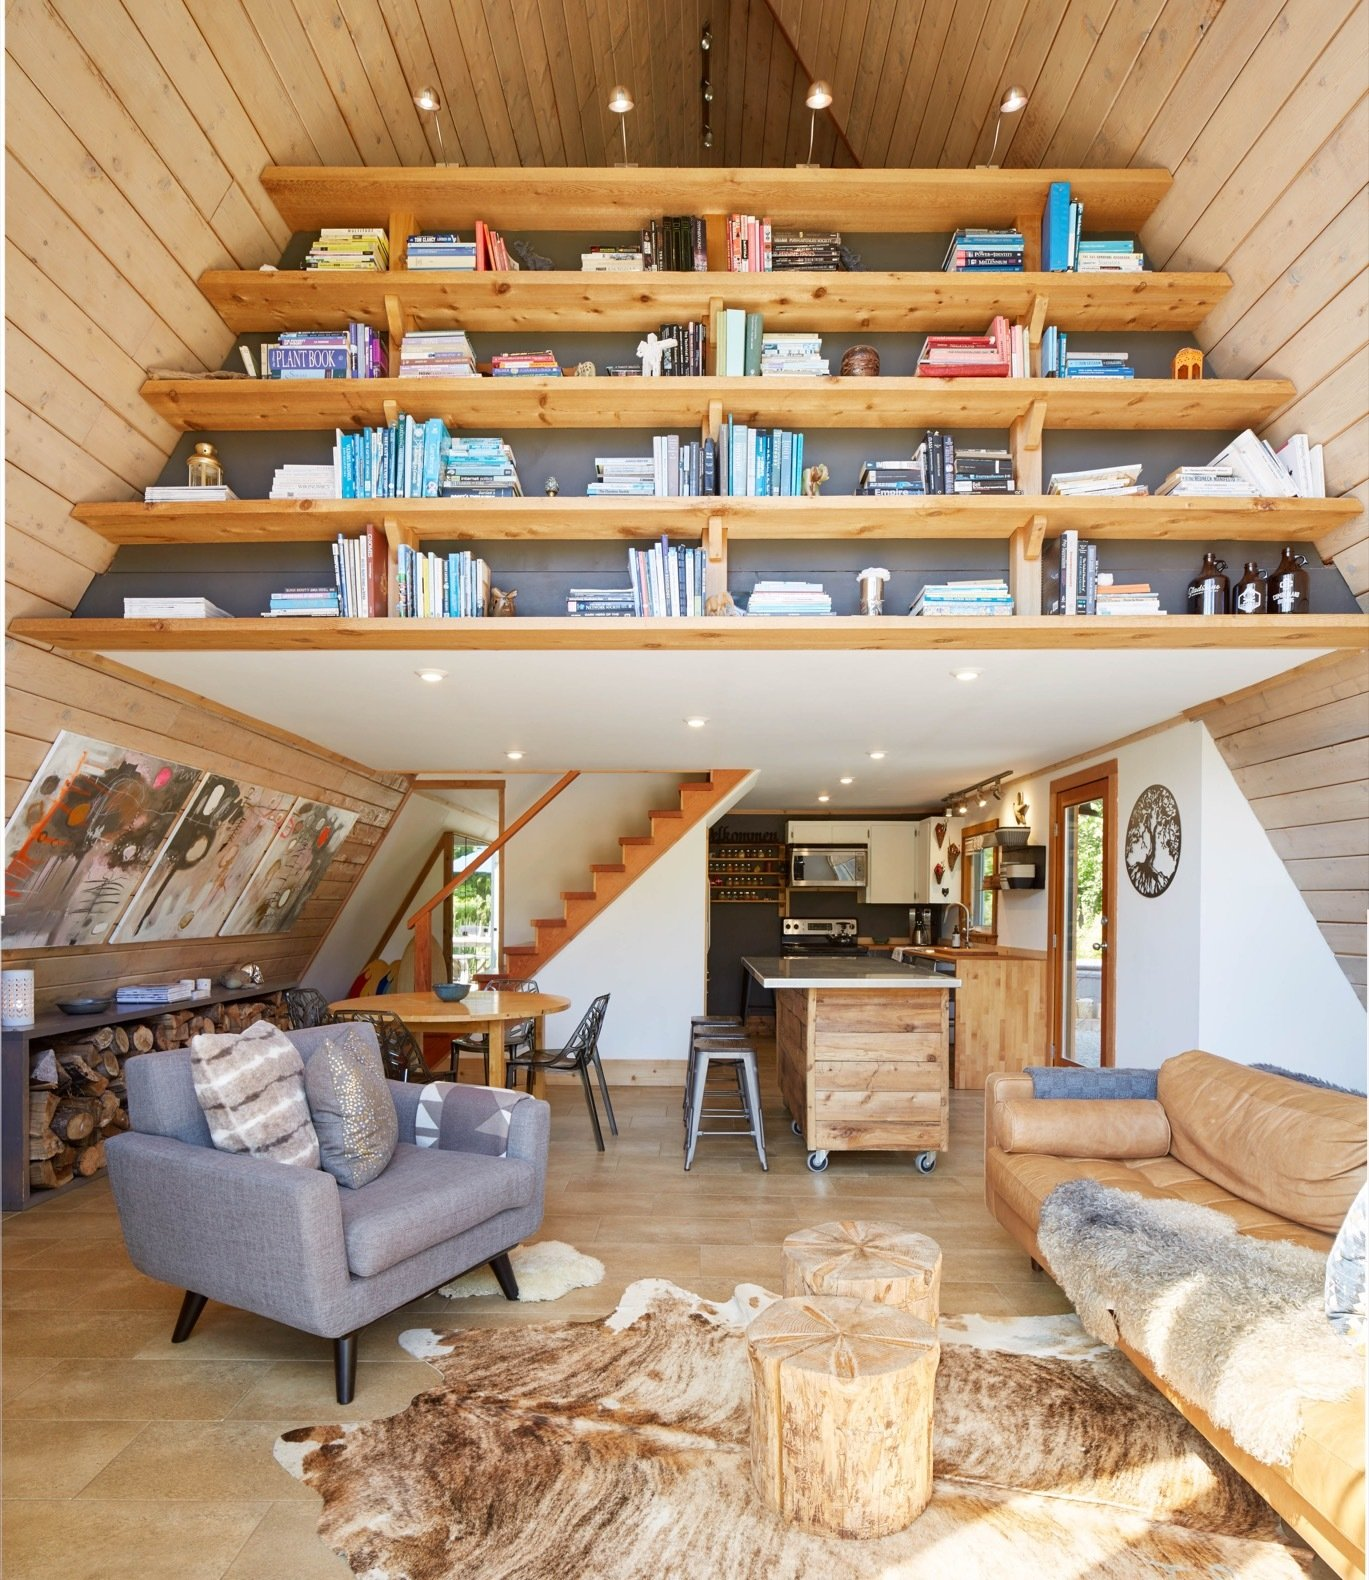 Storage Room and Shelves Storage Type Completed between the birth of their third child and Anthonie's doctoral defense, the built-in library is one of the couple's favorite features in the cabin.  Photo 1 of 13 in Get Cozy by the Sea in This A-Frame Cabin Asking $649K